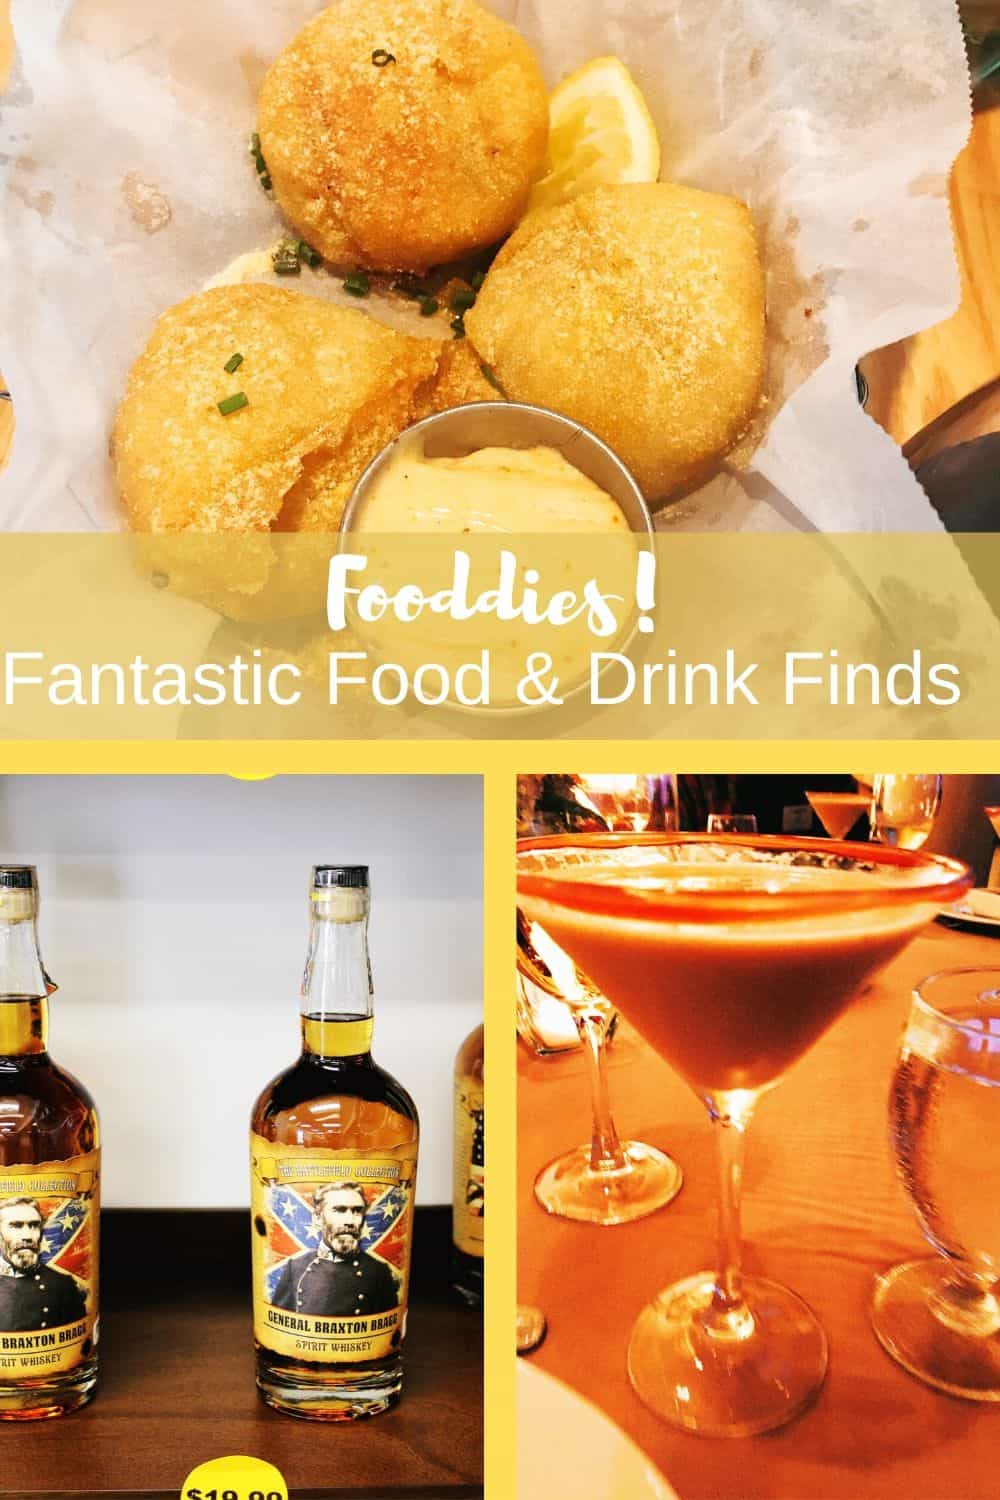 Guide to our favorite food & drink destinations. We love to travel! We love food! We love to cook, we love to eat, but most of all we love to experience food! This is a guide to our top foodie destinations, restaurants, wineries, breweries, and distilleries. Food and drink are meant to be experienced and savored. Share the experience with friends and make new friends - food & drink can unite. #food #drink #travel